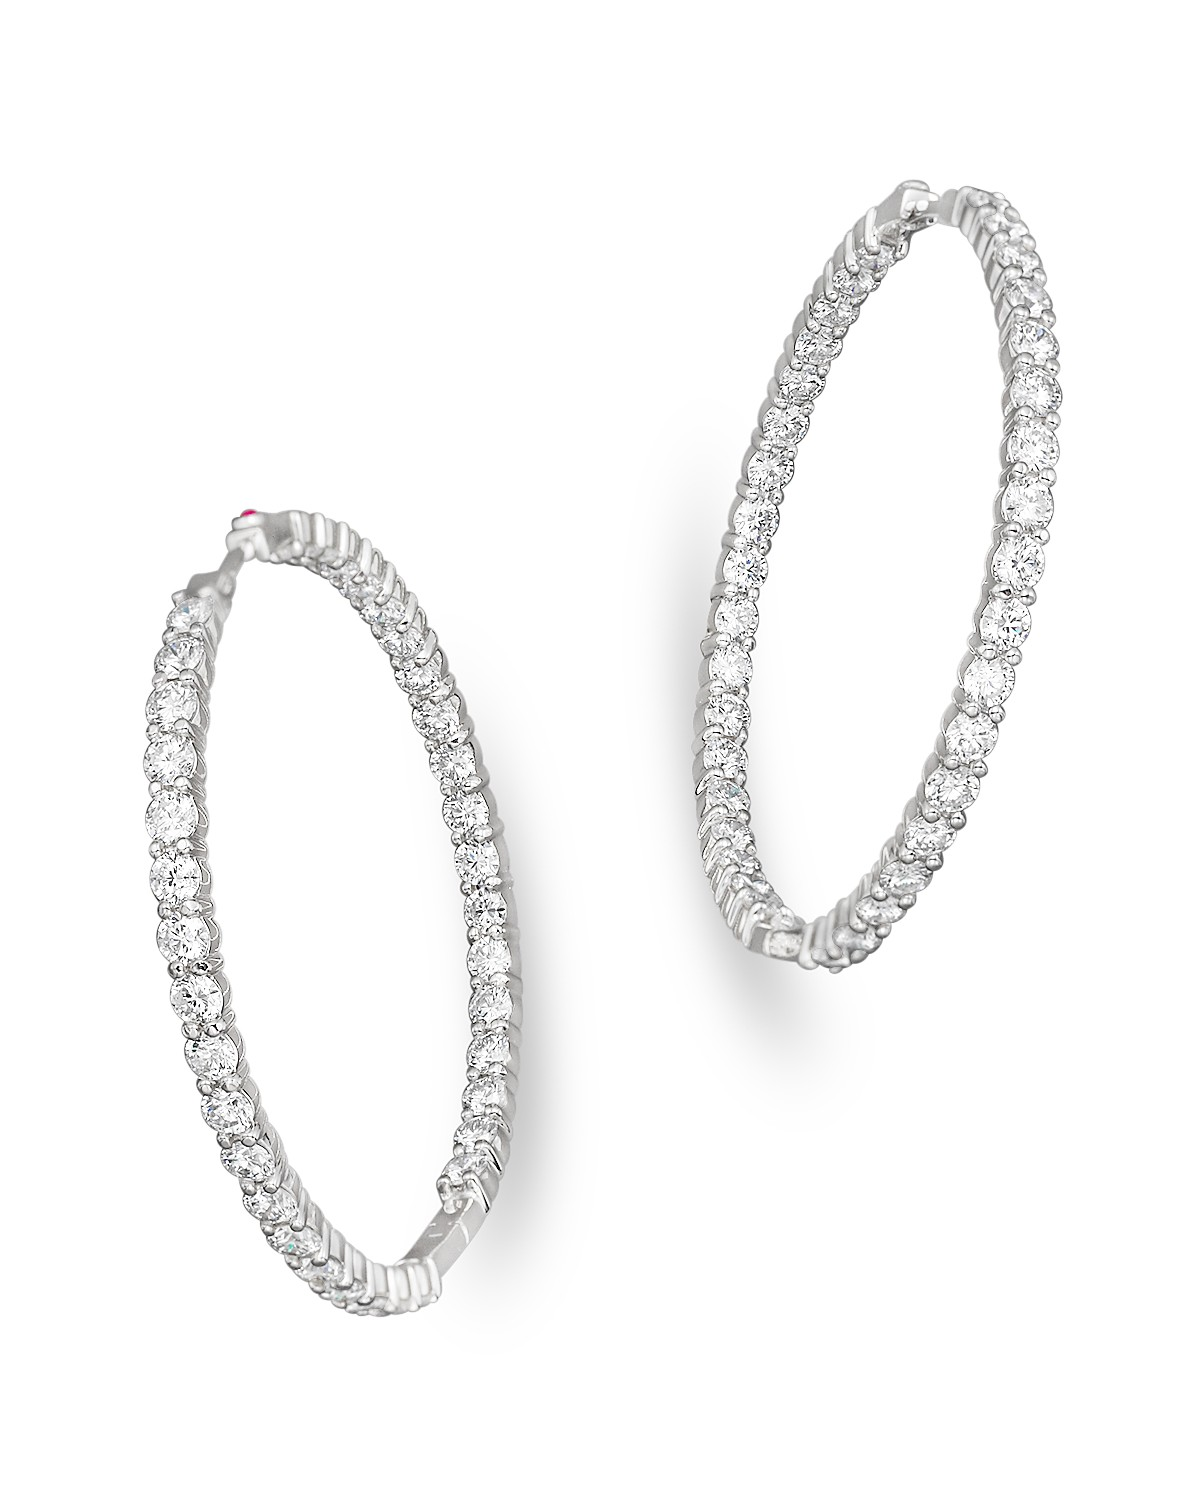 inside out more jewelry for l id diamond j chopard set by wide img at sale diamonds hoop large featuring gold white earrings